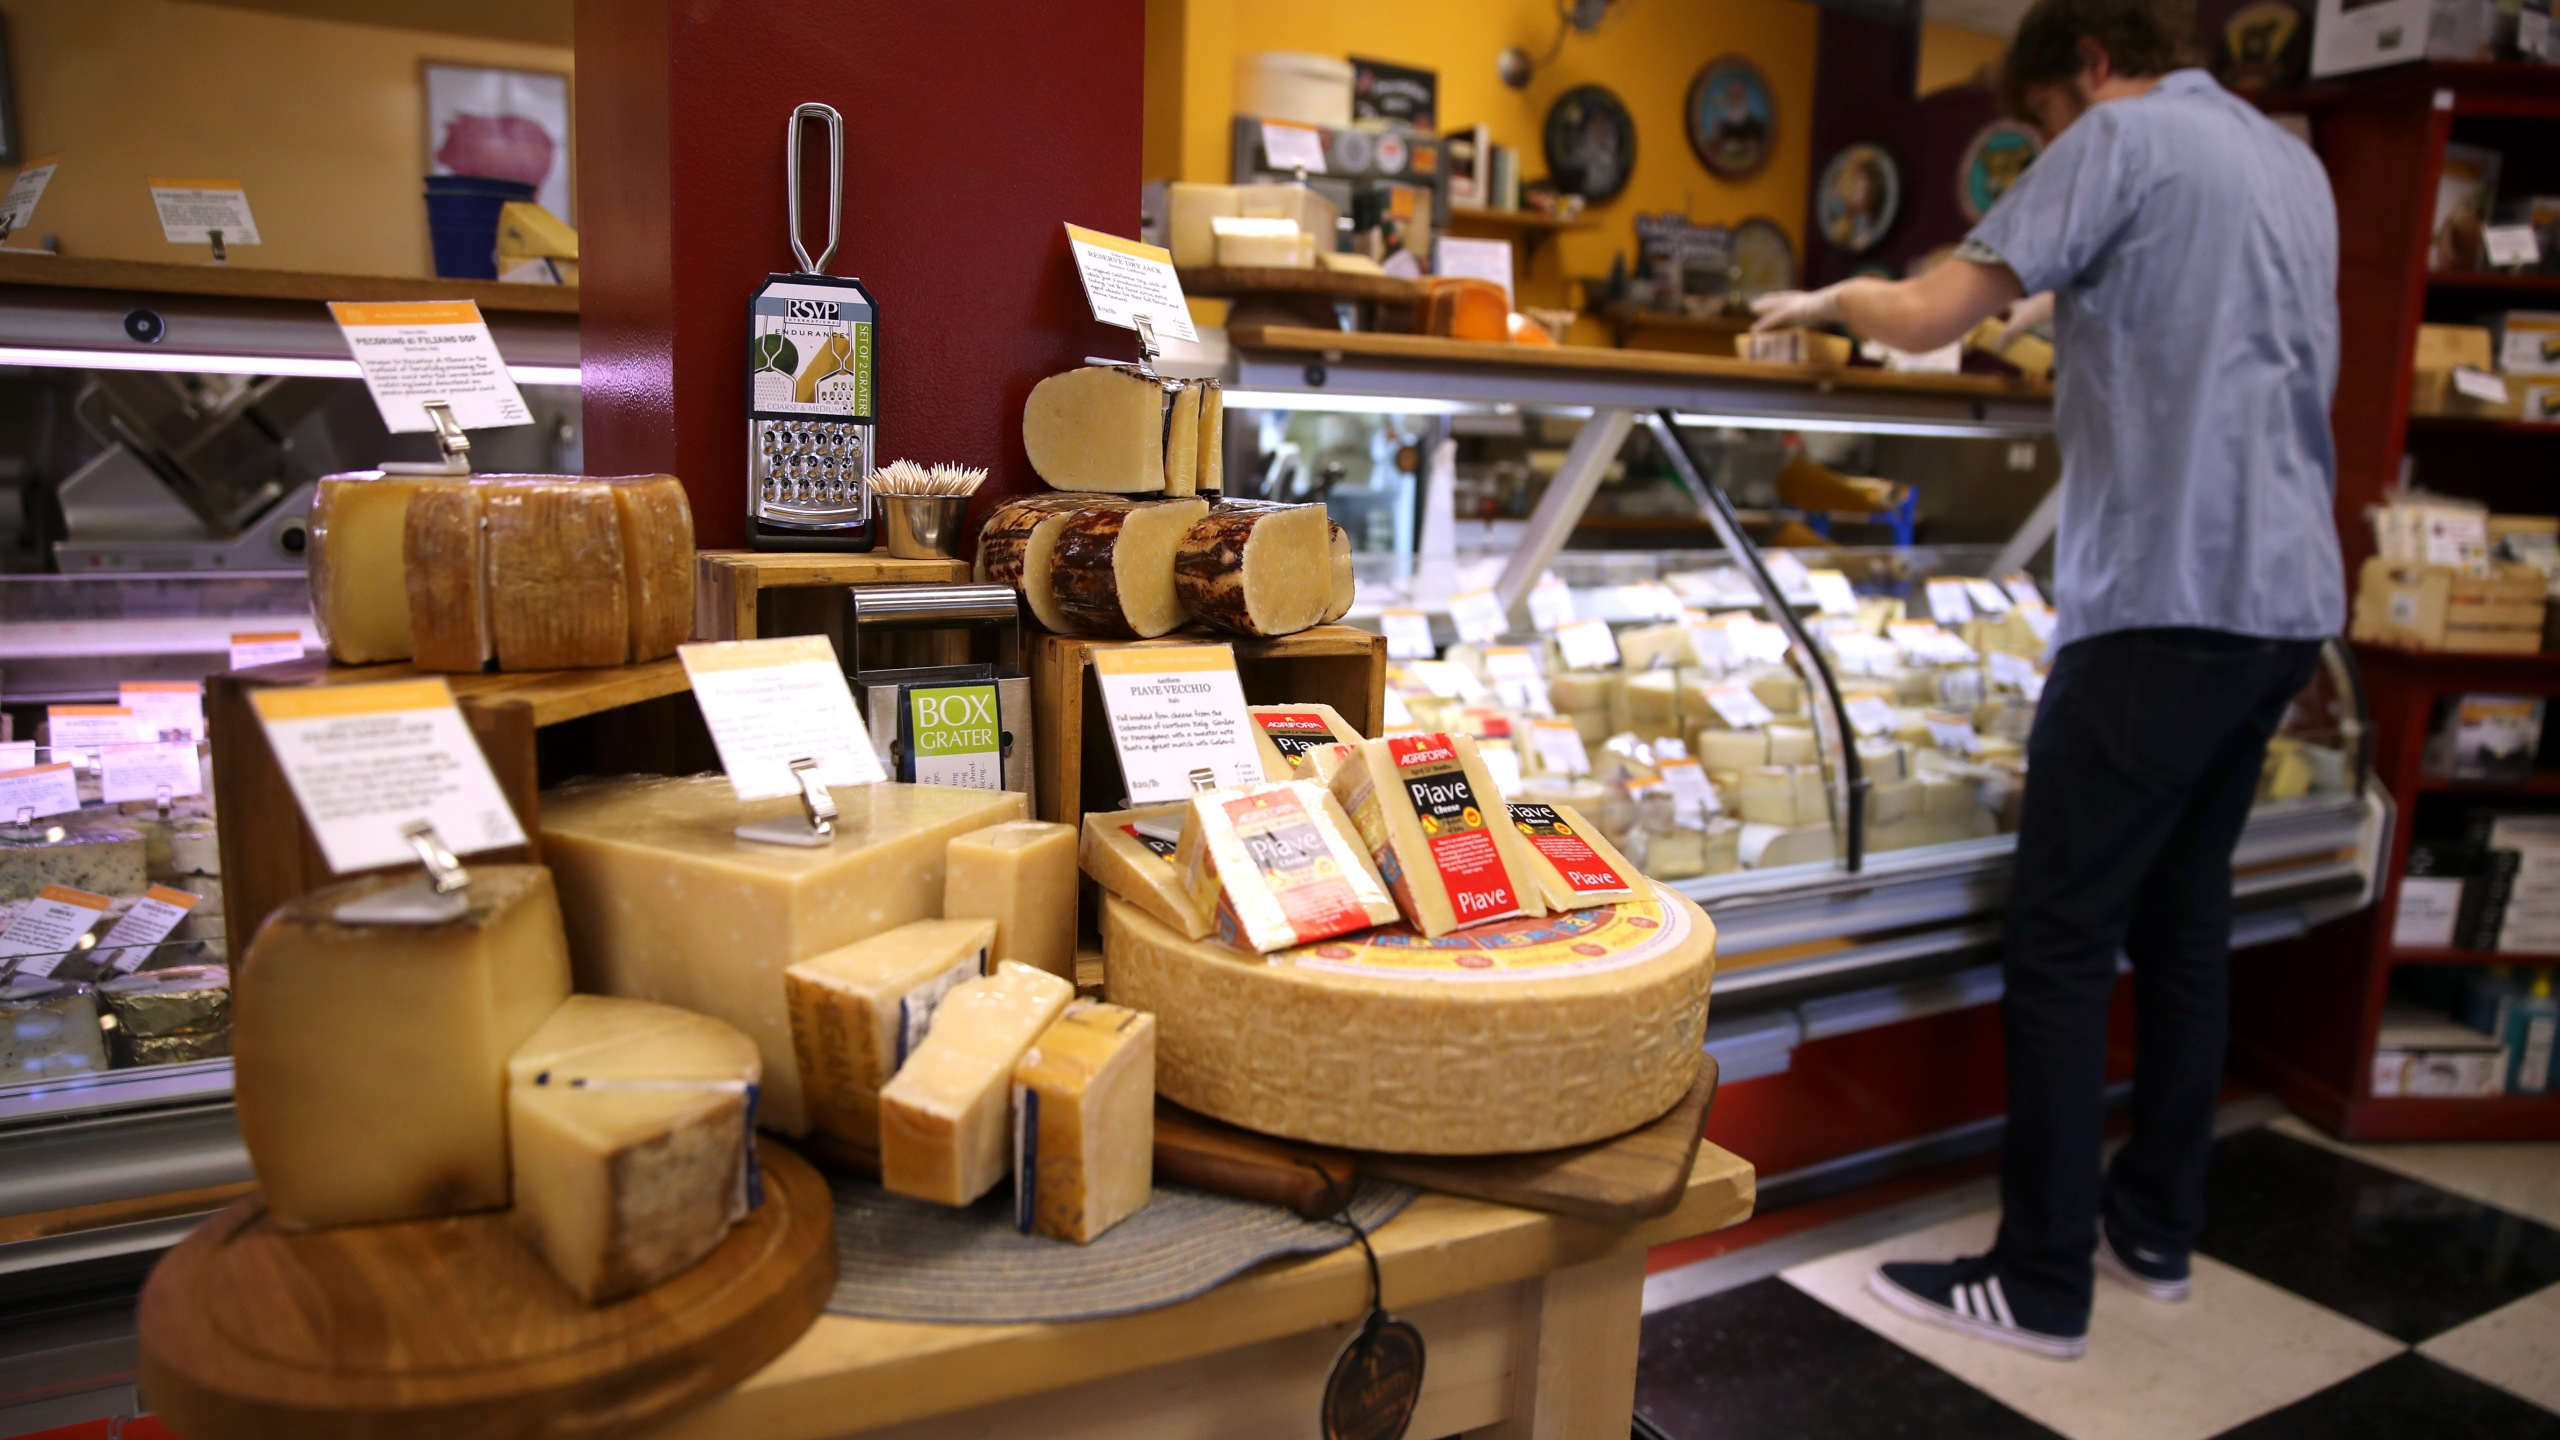 Imported parmesan cheese is displayed at Cheese Plus on Aug. 26, 2019, in San Francisco. The U.S. has proposed retaliatory tariffs on several European products including cheese, olive oil and wine that could be as much as 100 percent. The tariffs are in response to the European Union's subsidies to European aircraft manufacturer Airbus. (Credit: Justin Sullivan/Getty Images)